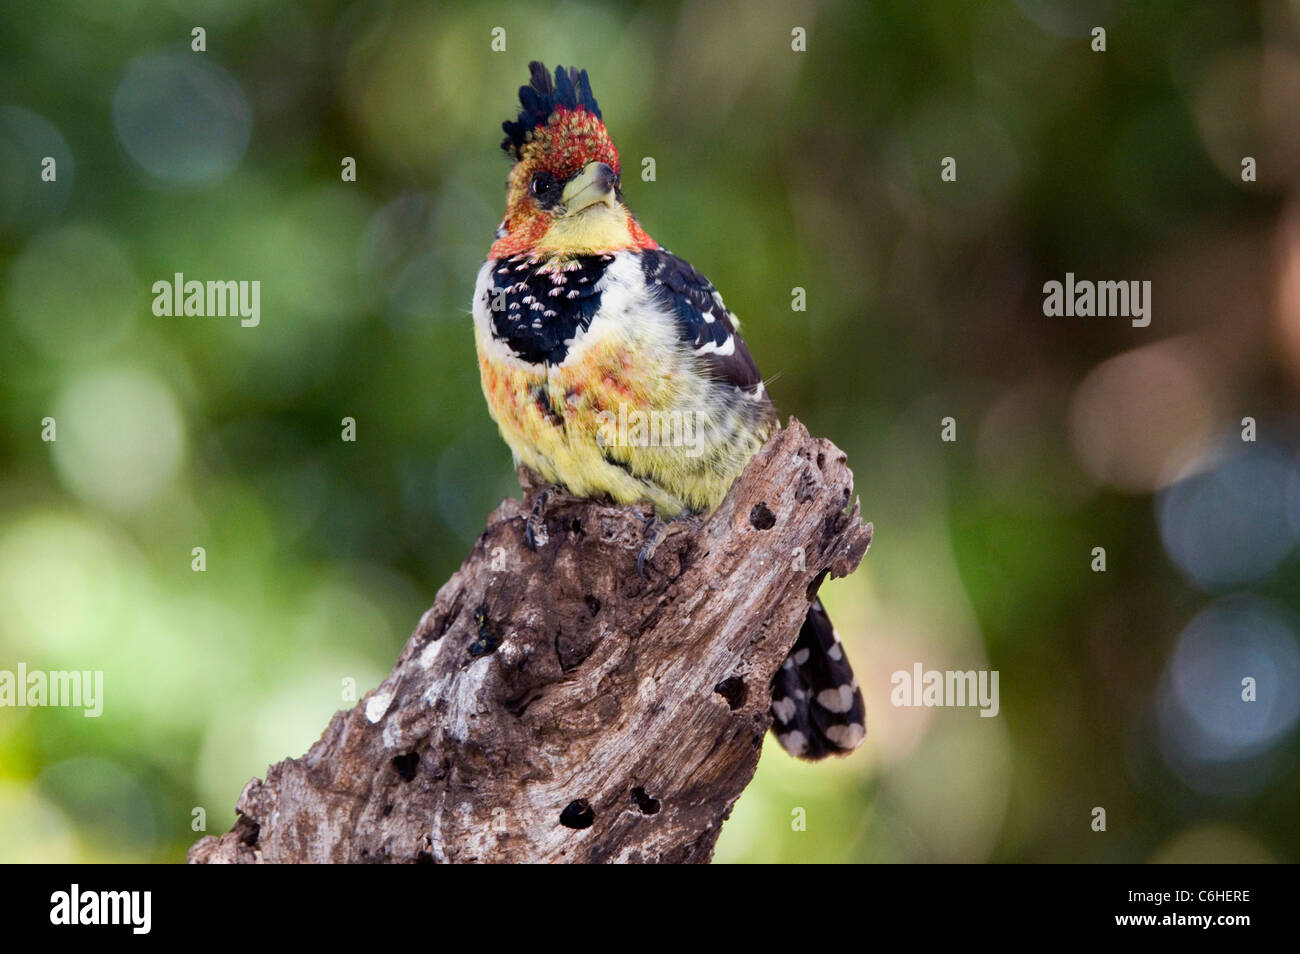 Crested / Levaillant's Barbet. - Stock Image